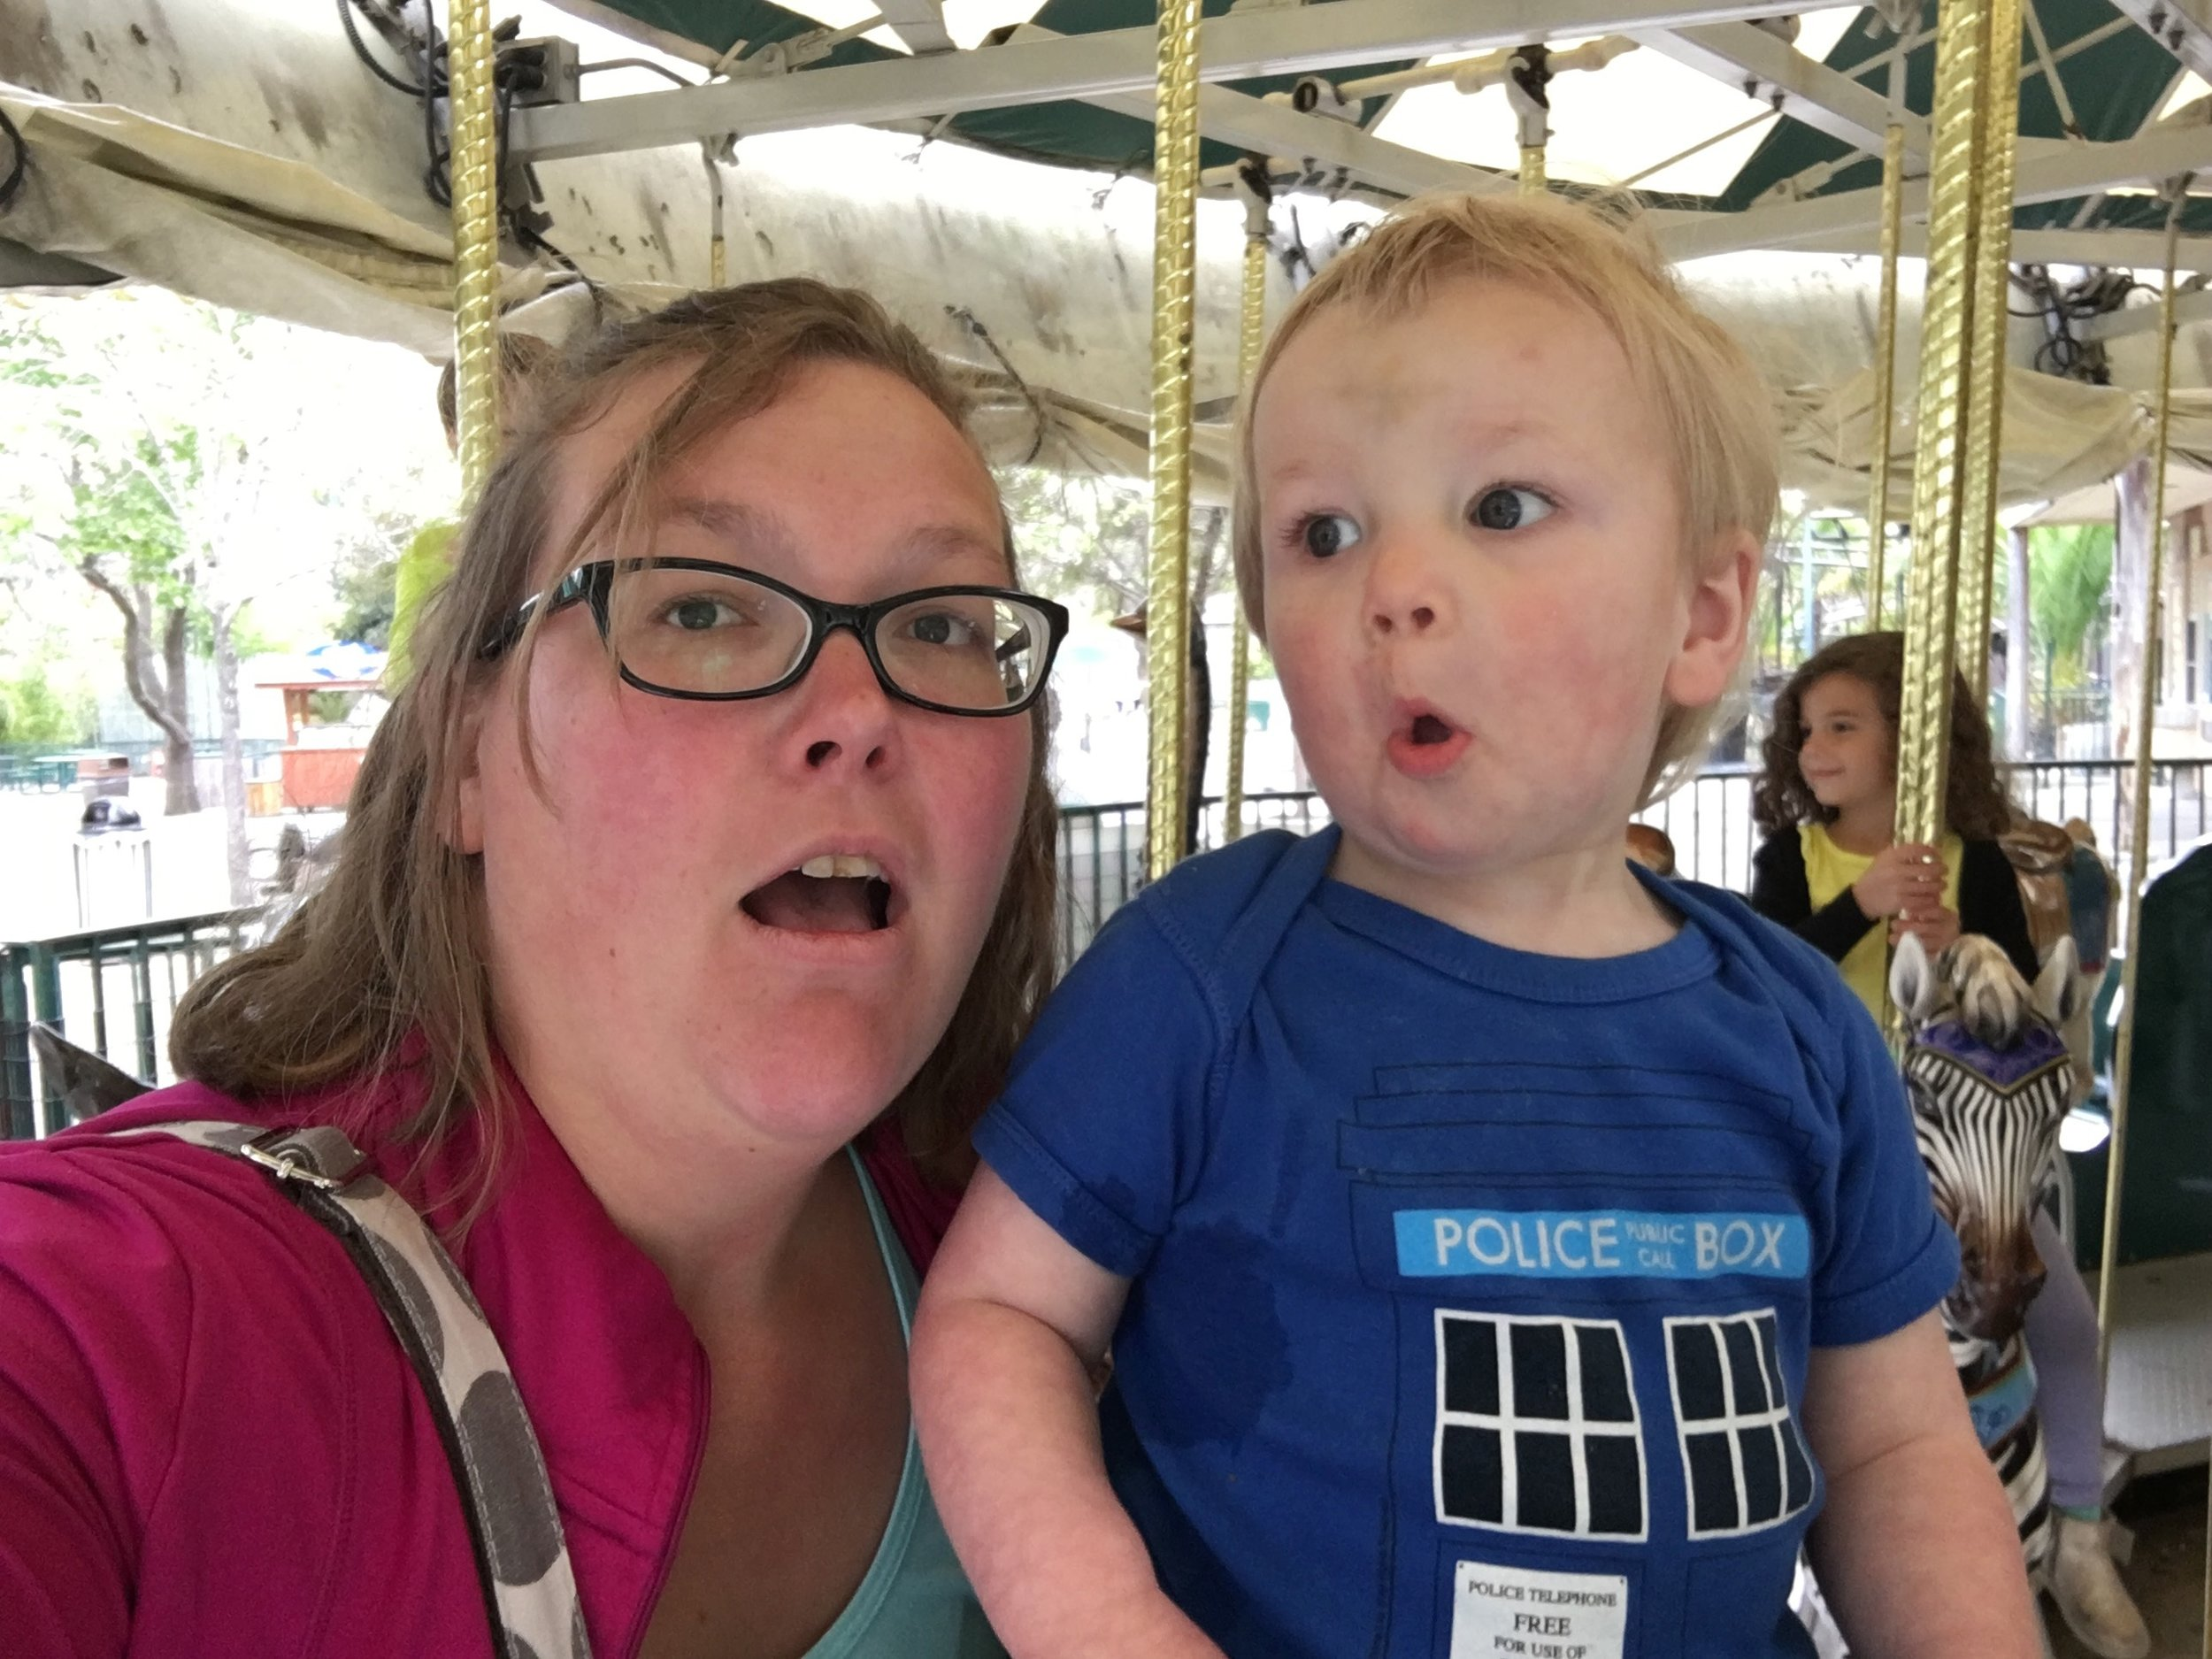 Silly faces on the carousel